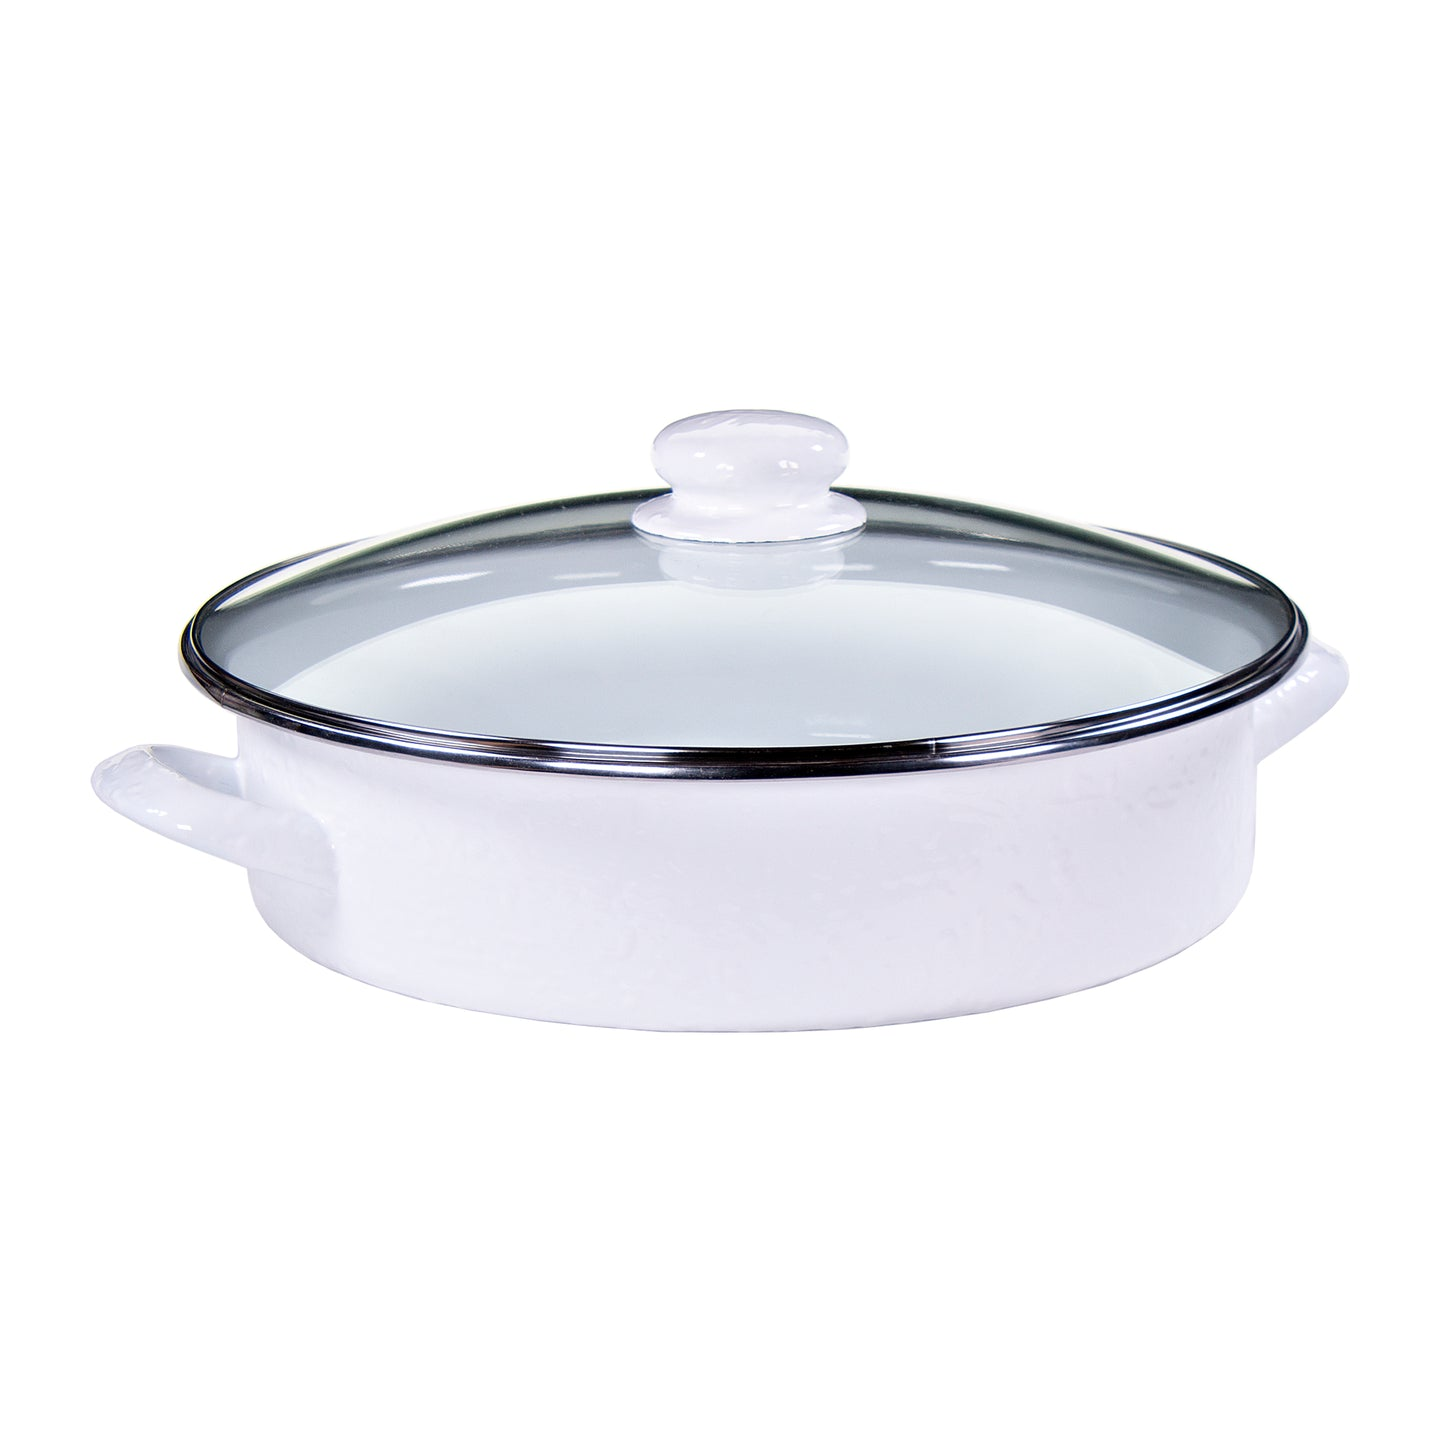 Large Saute Pan - White